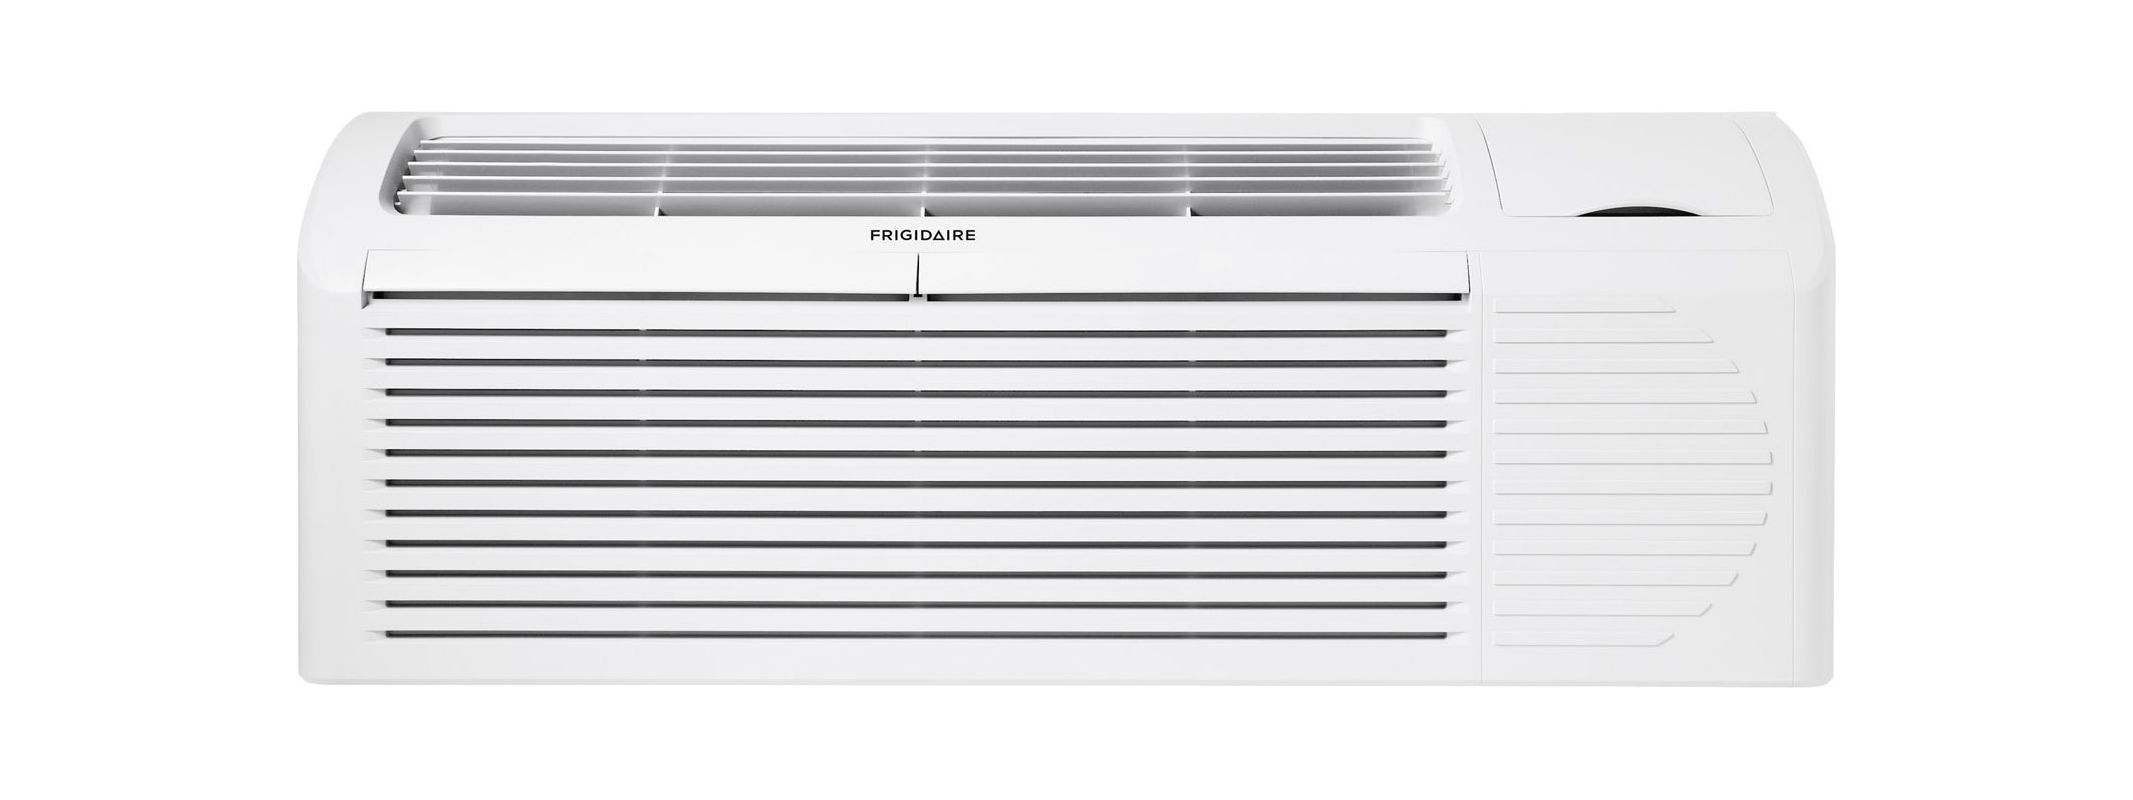 Frigidaire FRP12PTT3R 12,000 BTU 265 Volt Packaged Terminal Air Conditioner (PTA photo